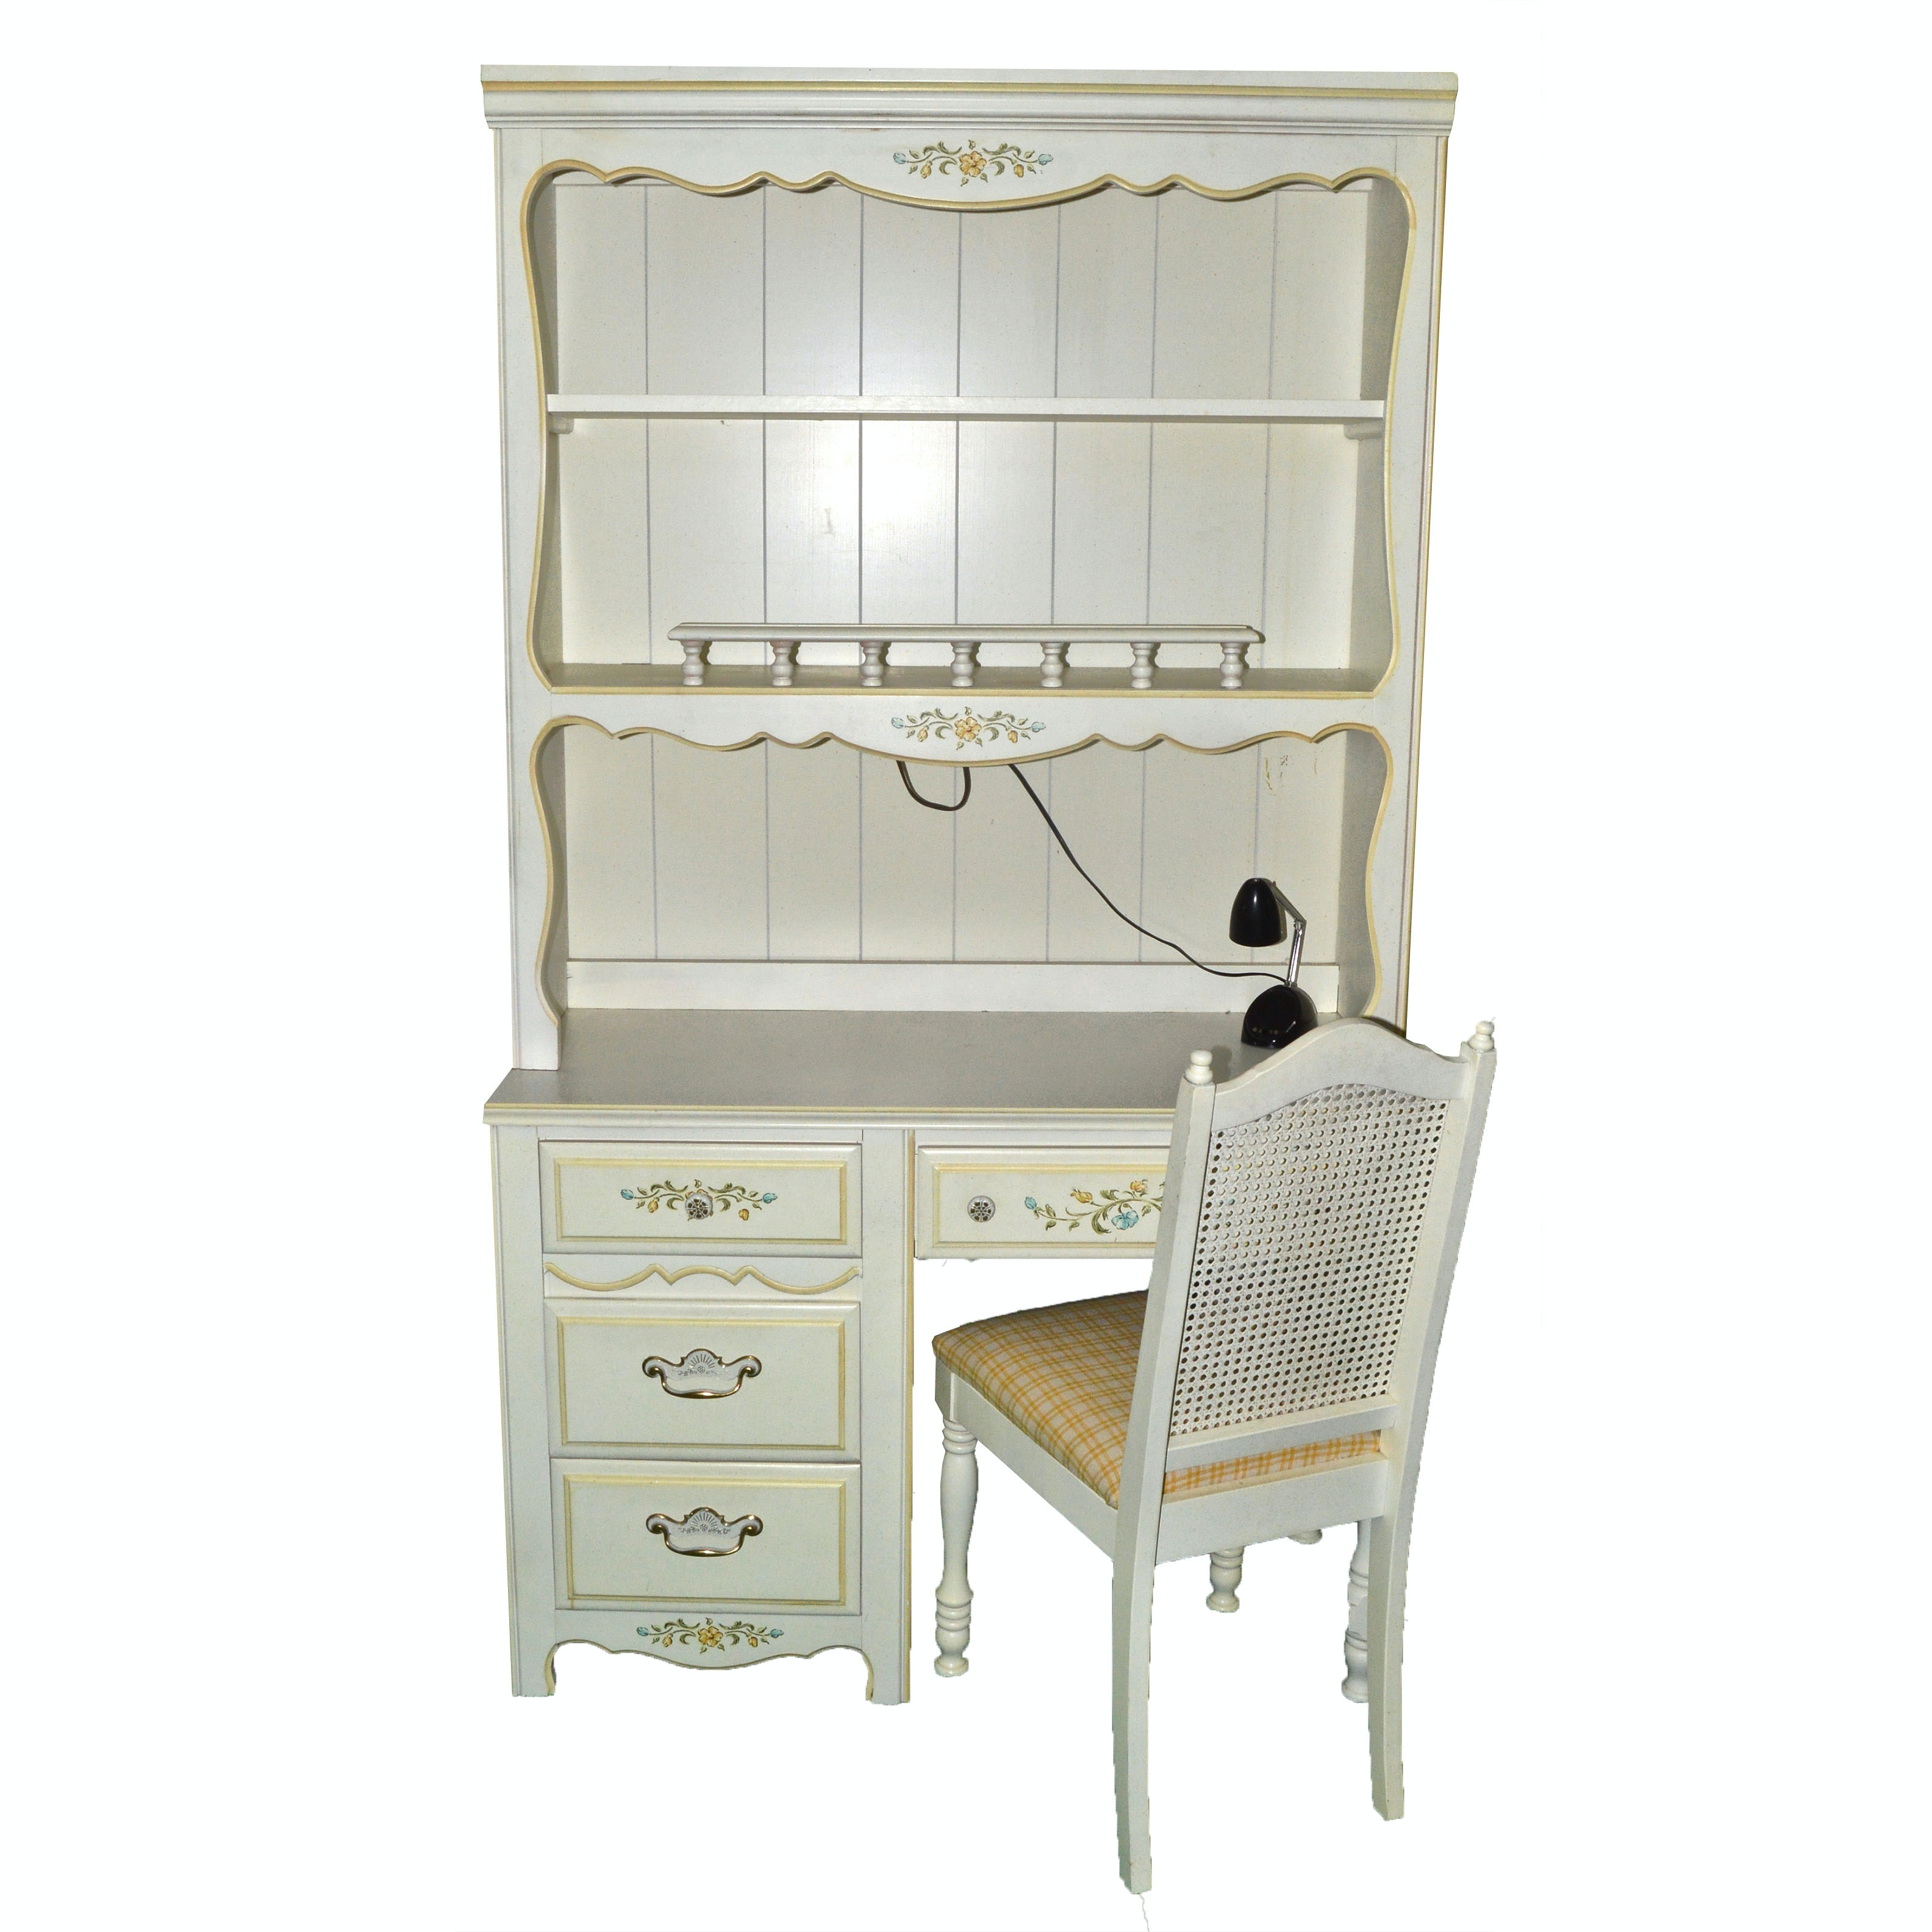 French Country Inspired Desk and Hutch